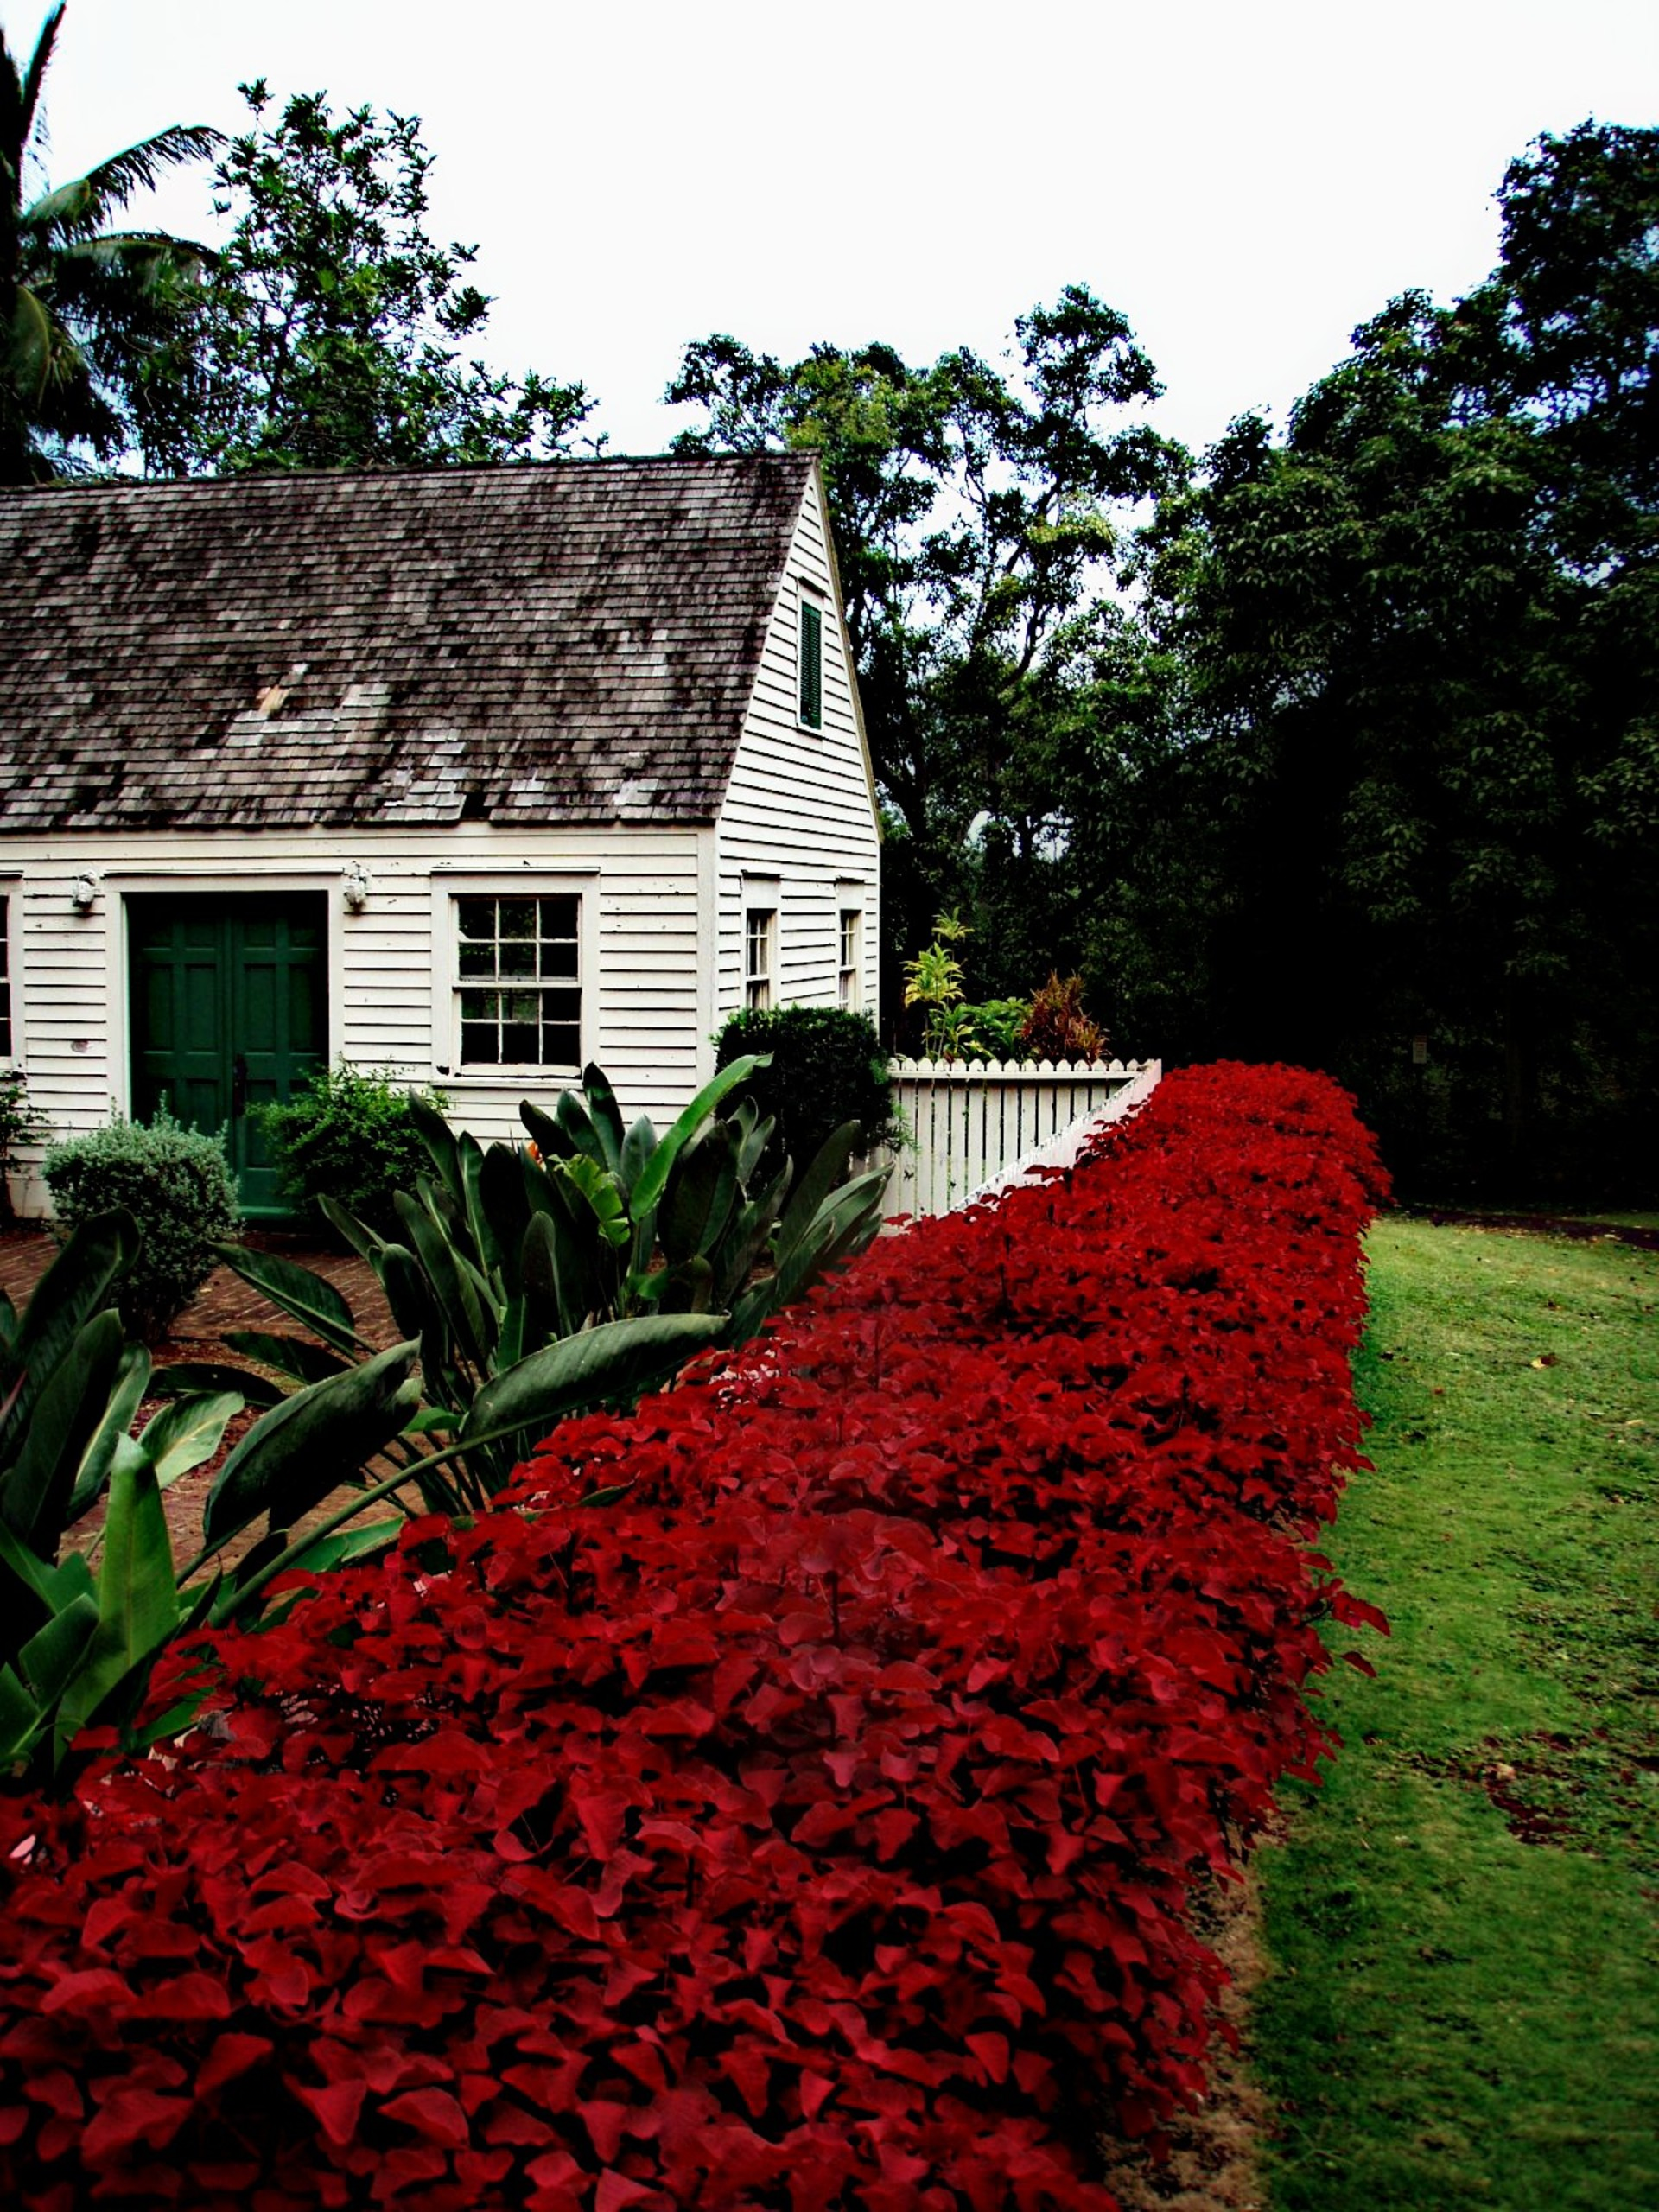 Old house. Old house | zolip., Old house, flower, nature